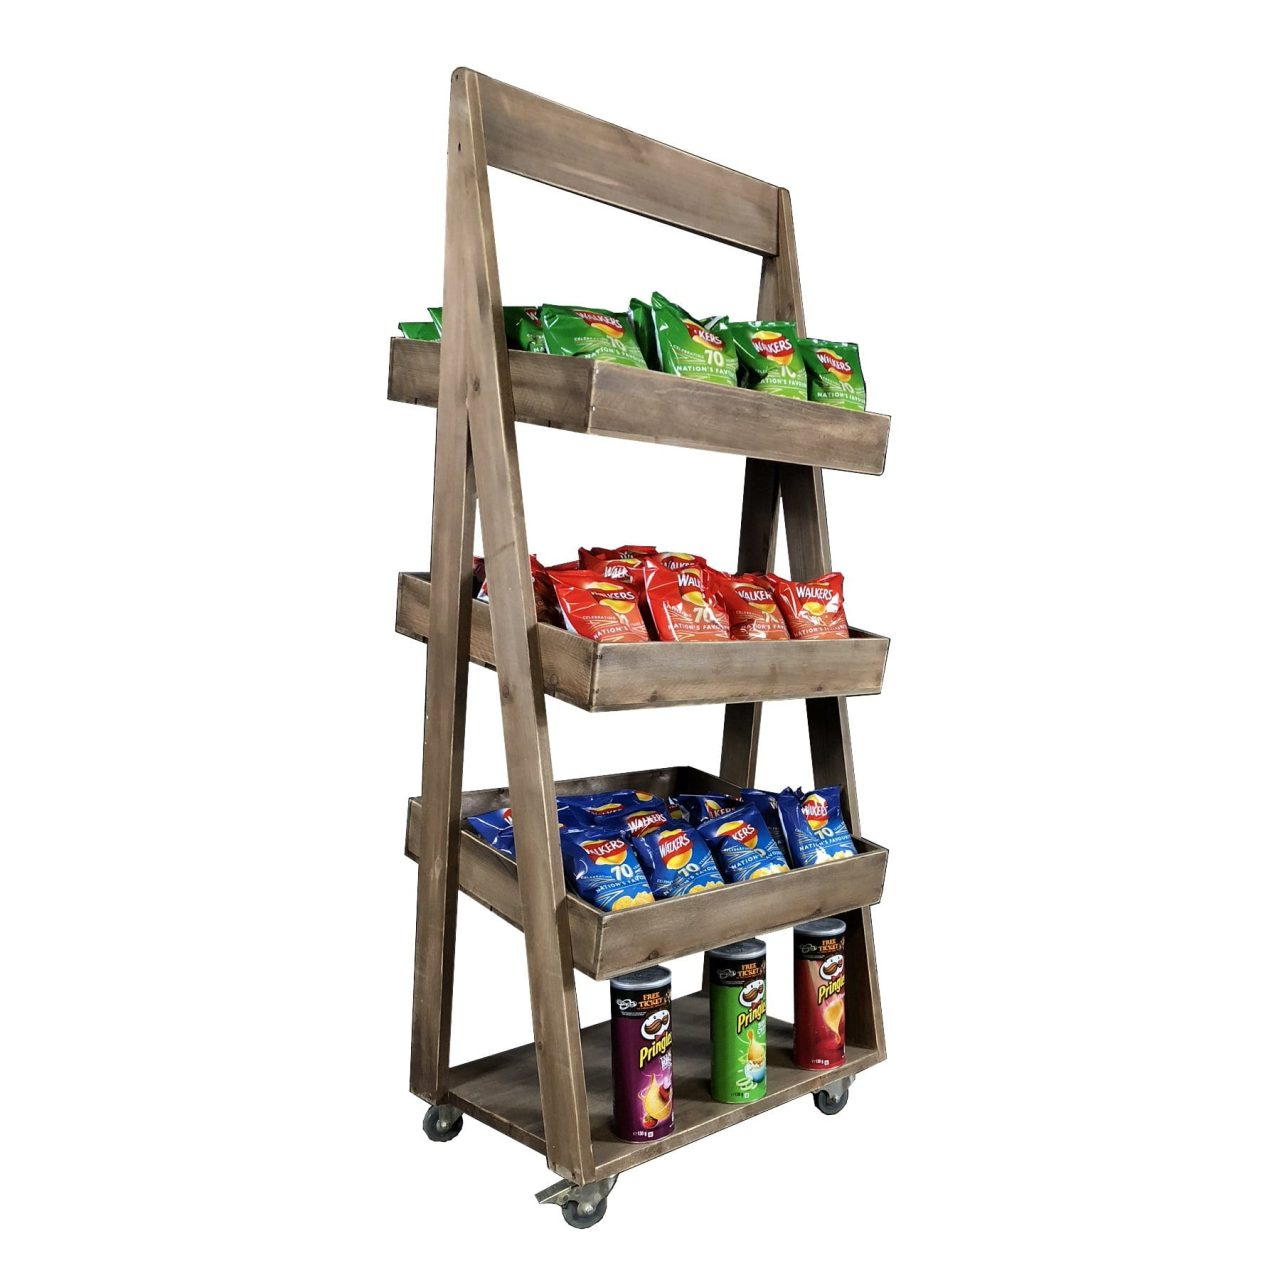 Exhibition Stand Frames : Mobile rustic tier slanted wooden a frame display stand